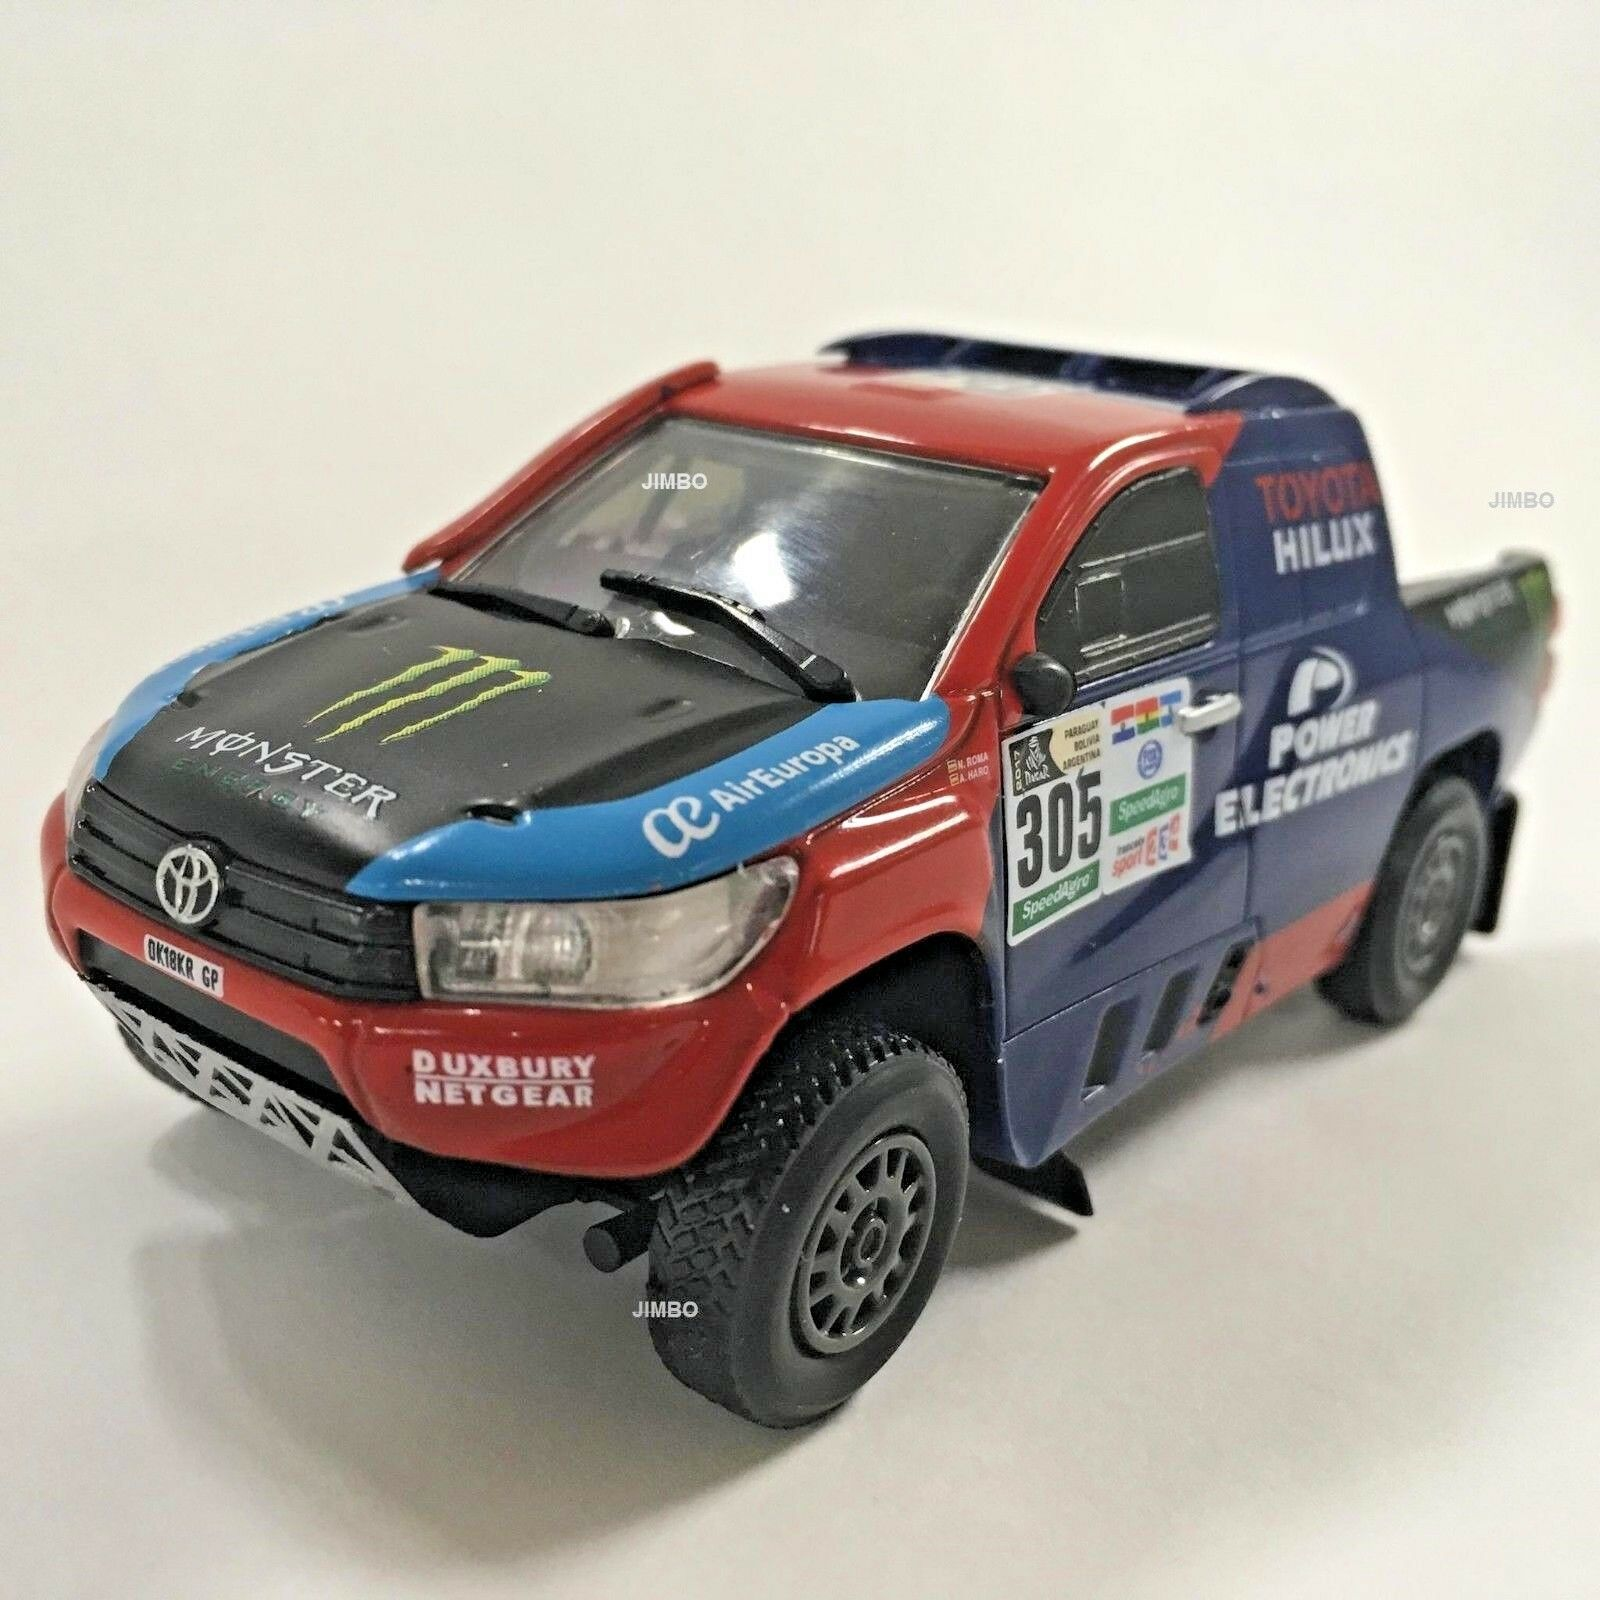 IXO - TOYOTA HILUX V8 1 43 RALLY DAKAR 2017, DIECAST, METAL, NEW IN BOX.